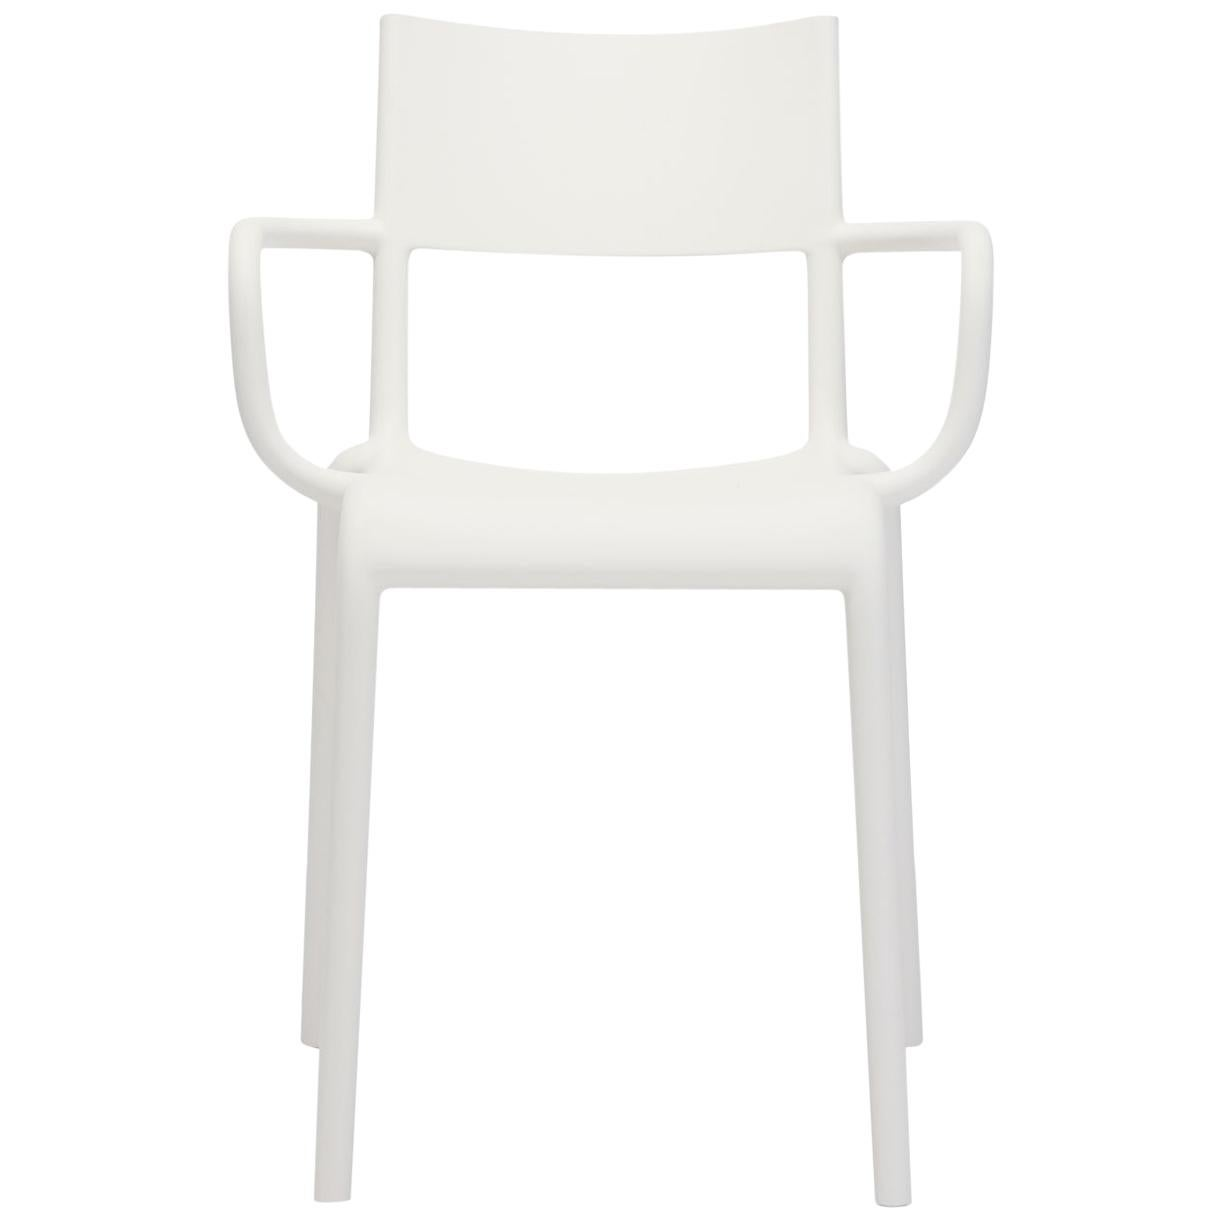 Set of 2 Kartell Generic A Chairs in White by Philippe Starck